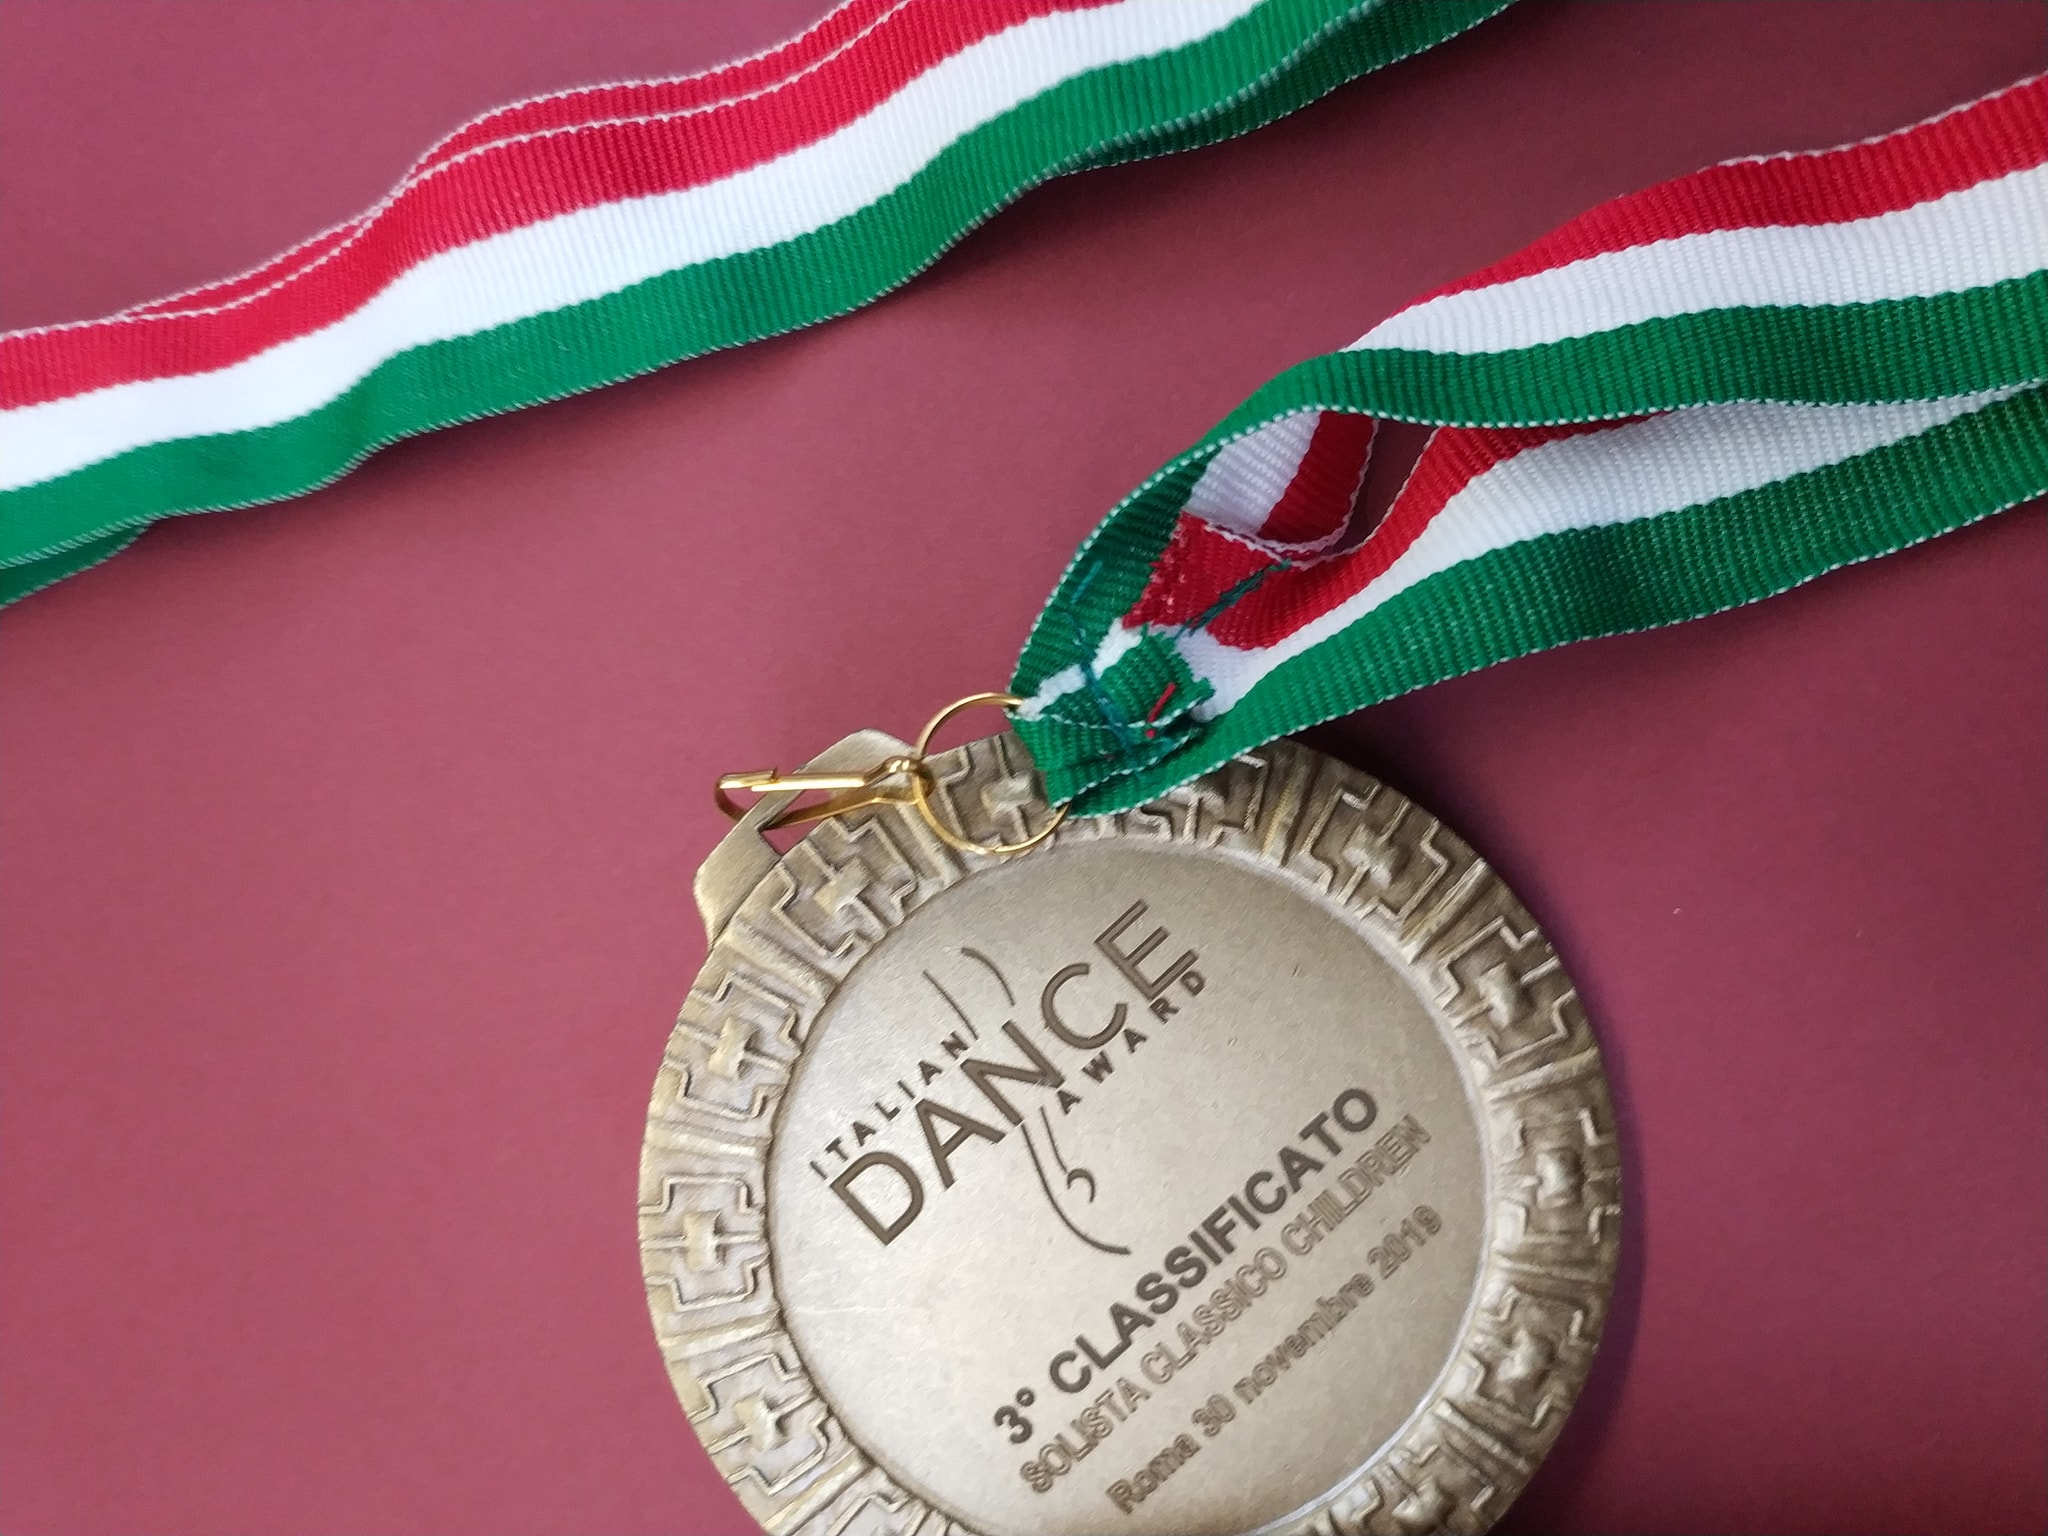 Terzo Classificato al prestigioso Italian Dance Award 2019